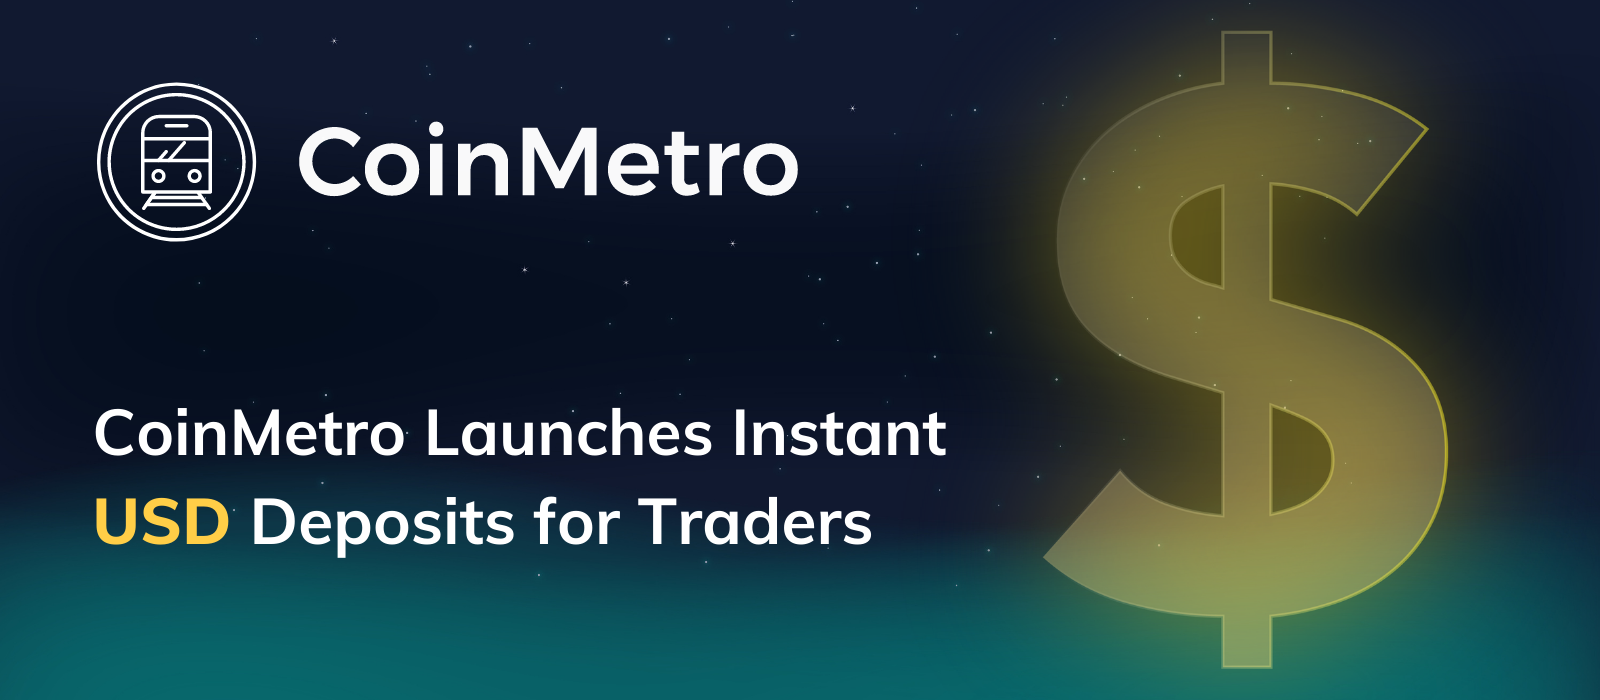 Welcoming USD to BTC Transactions on CoinMetro